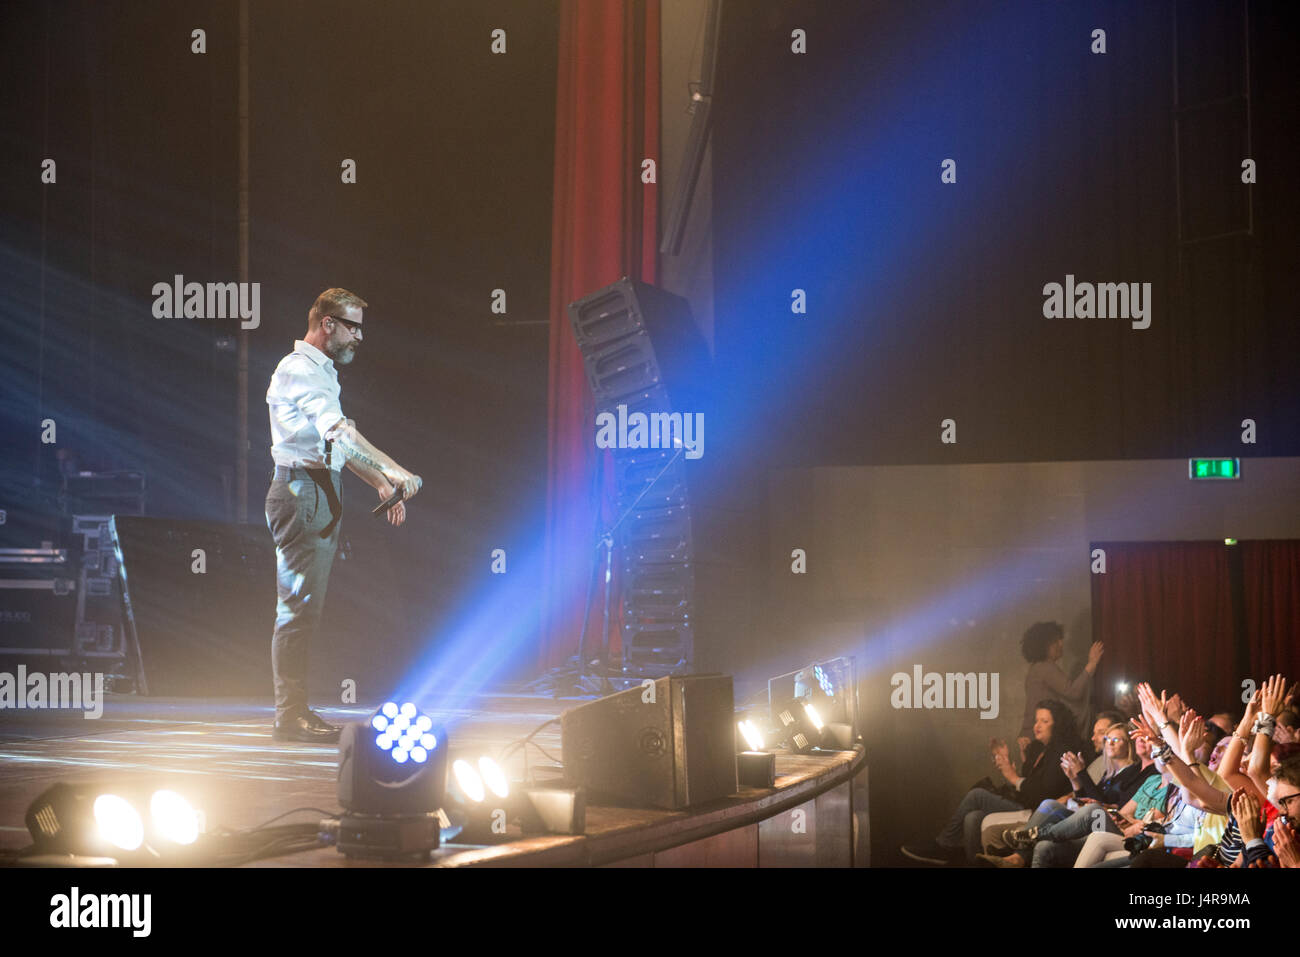 """Turin, Italia. 13th May, 2017. 13 May 2017 - Marco Masini on stage at theater """"Colosseo"""", Turin, with his """"SPOSTATO Stock Photo"""